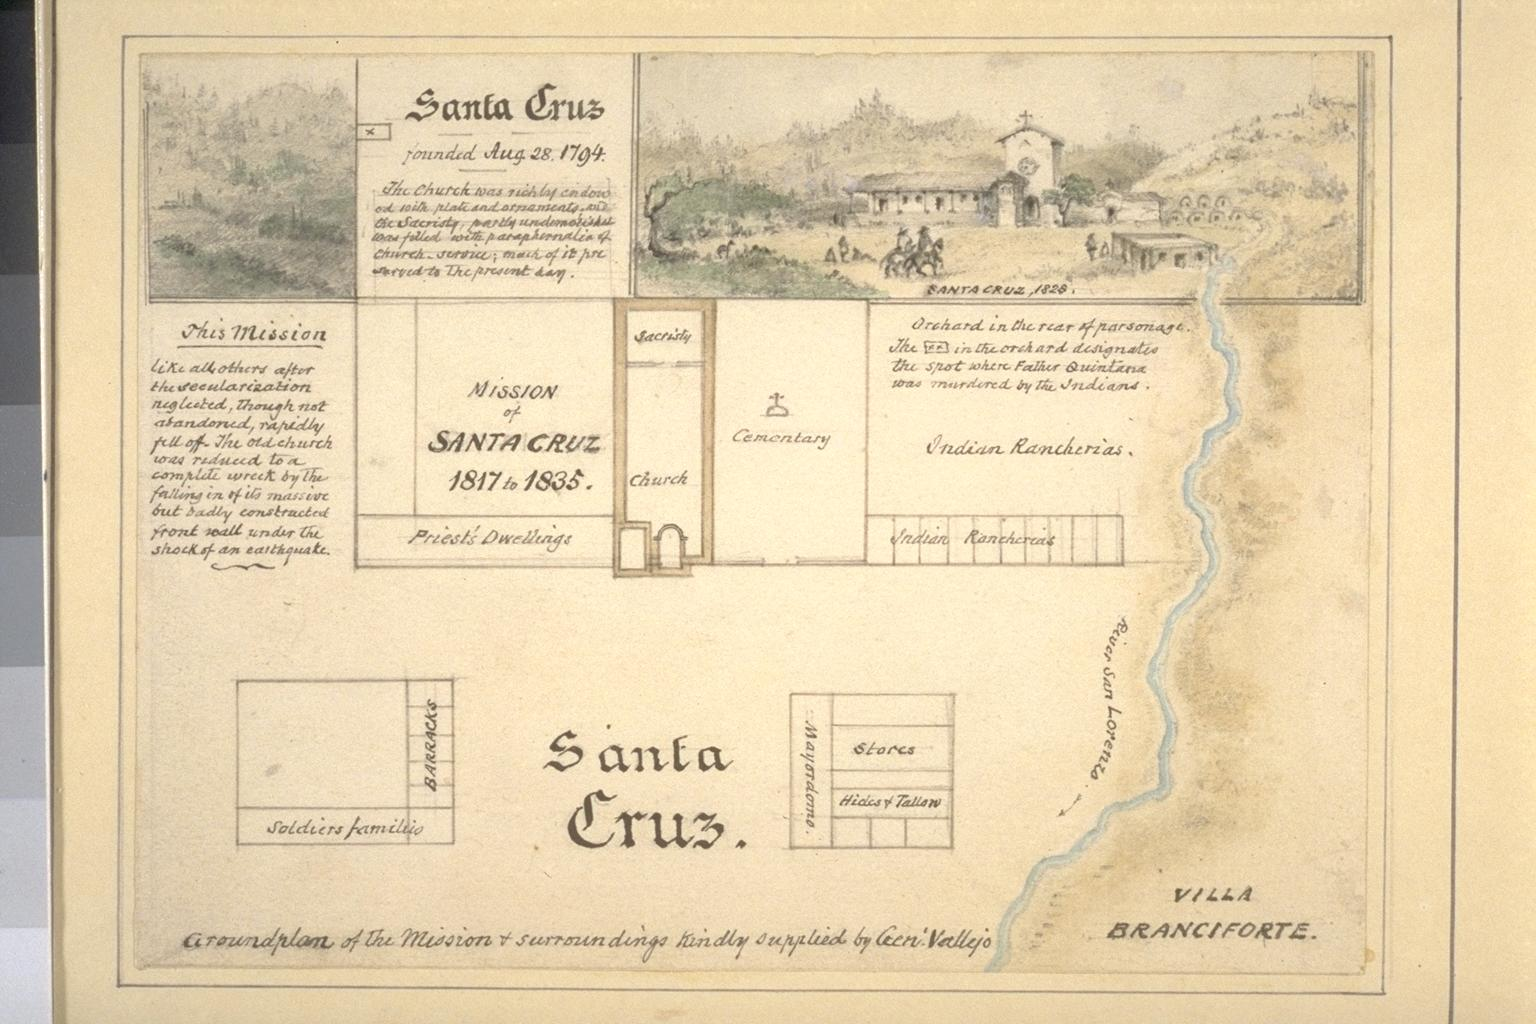 An 1878 sketch of Mission Santa Cruz's layout. By this time, most of the original structures had fallen victim to multiple earthquakes.